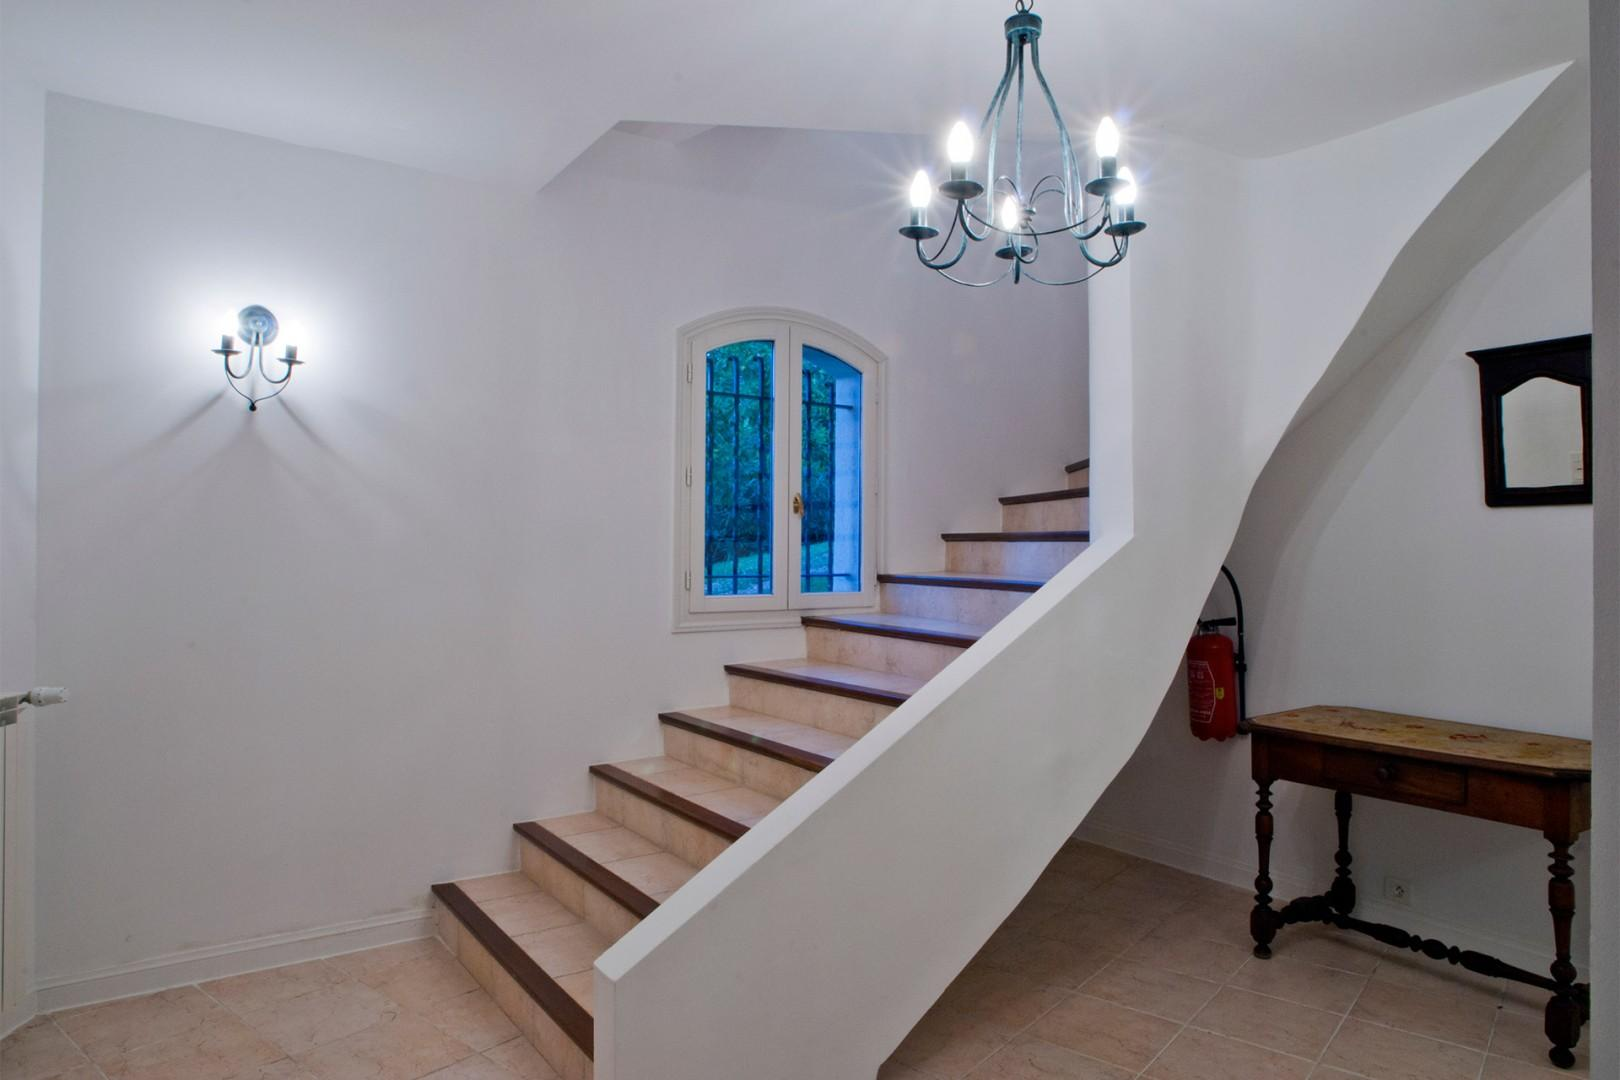 Internal staircase leading to the second floor